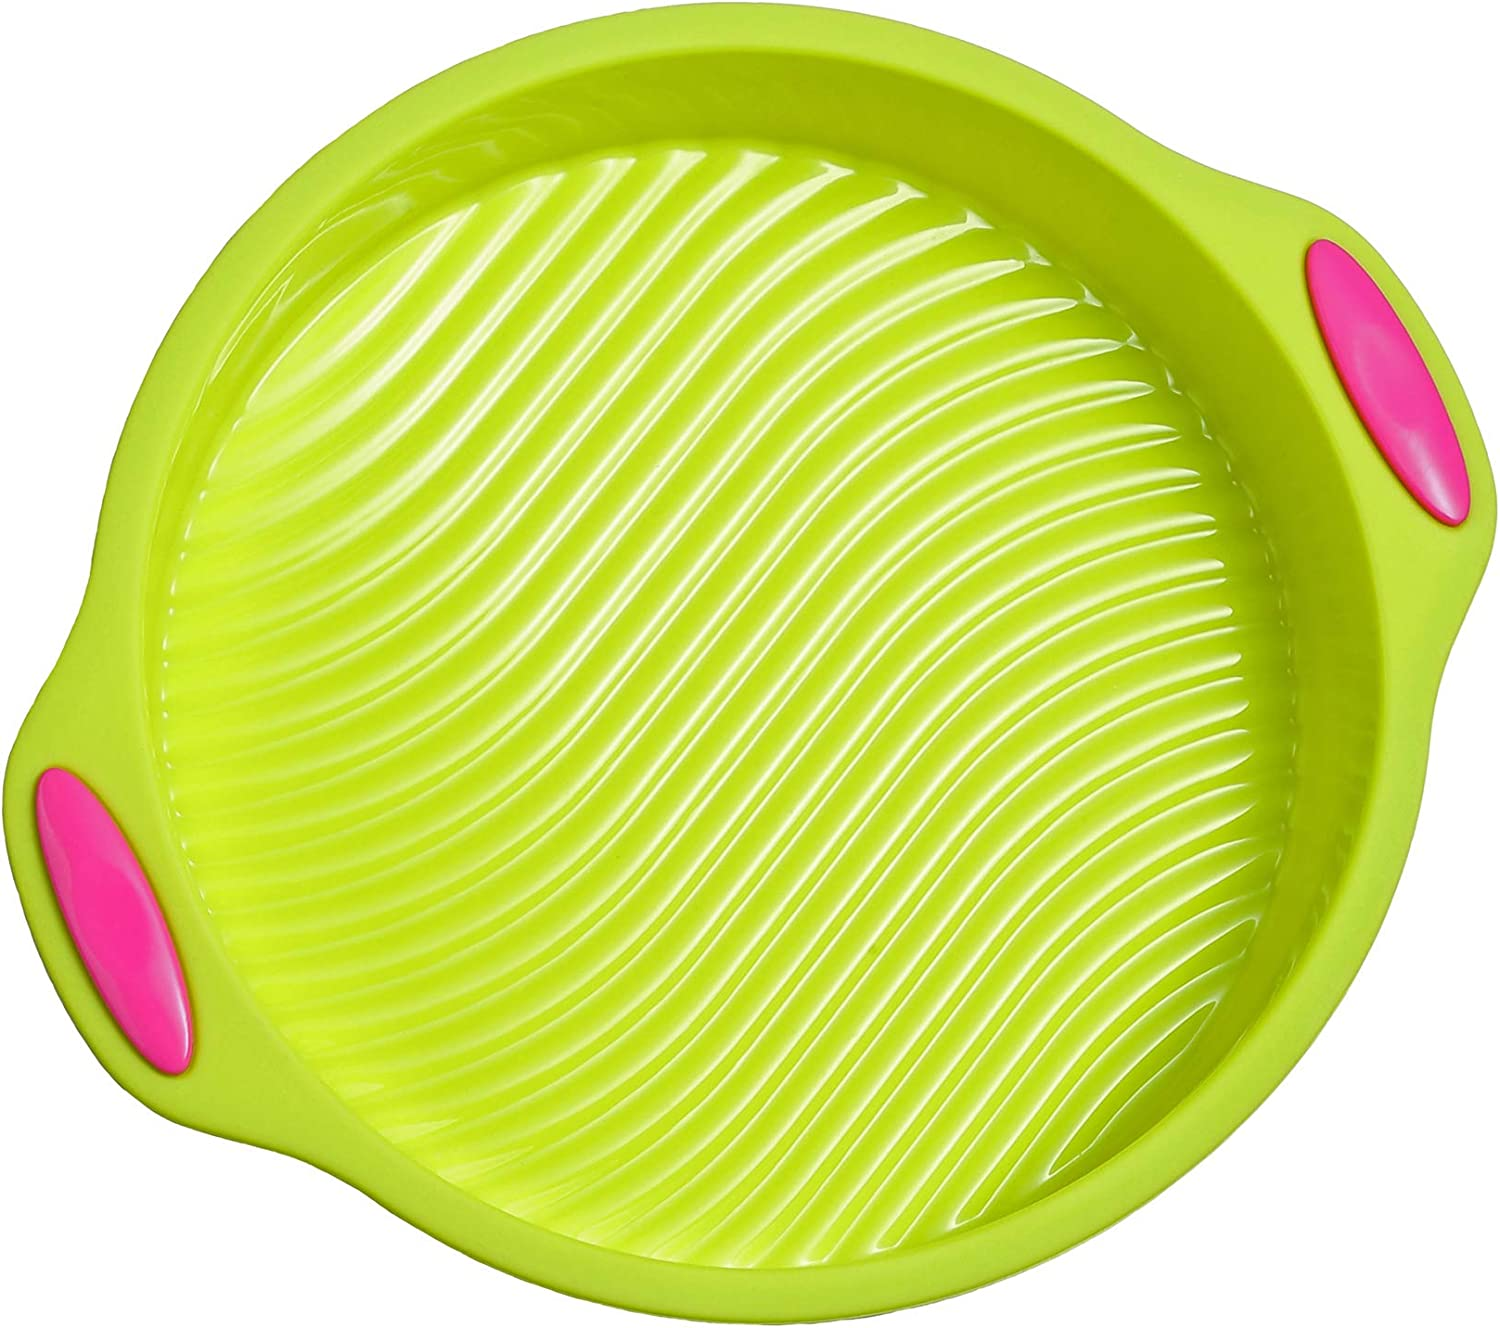 Megrocle 9-Inch Food Grade Silicone Round Cake Pan, Non Stick Reusable Large Baking Pans Silicone Cake Mold Bakeware, Green